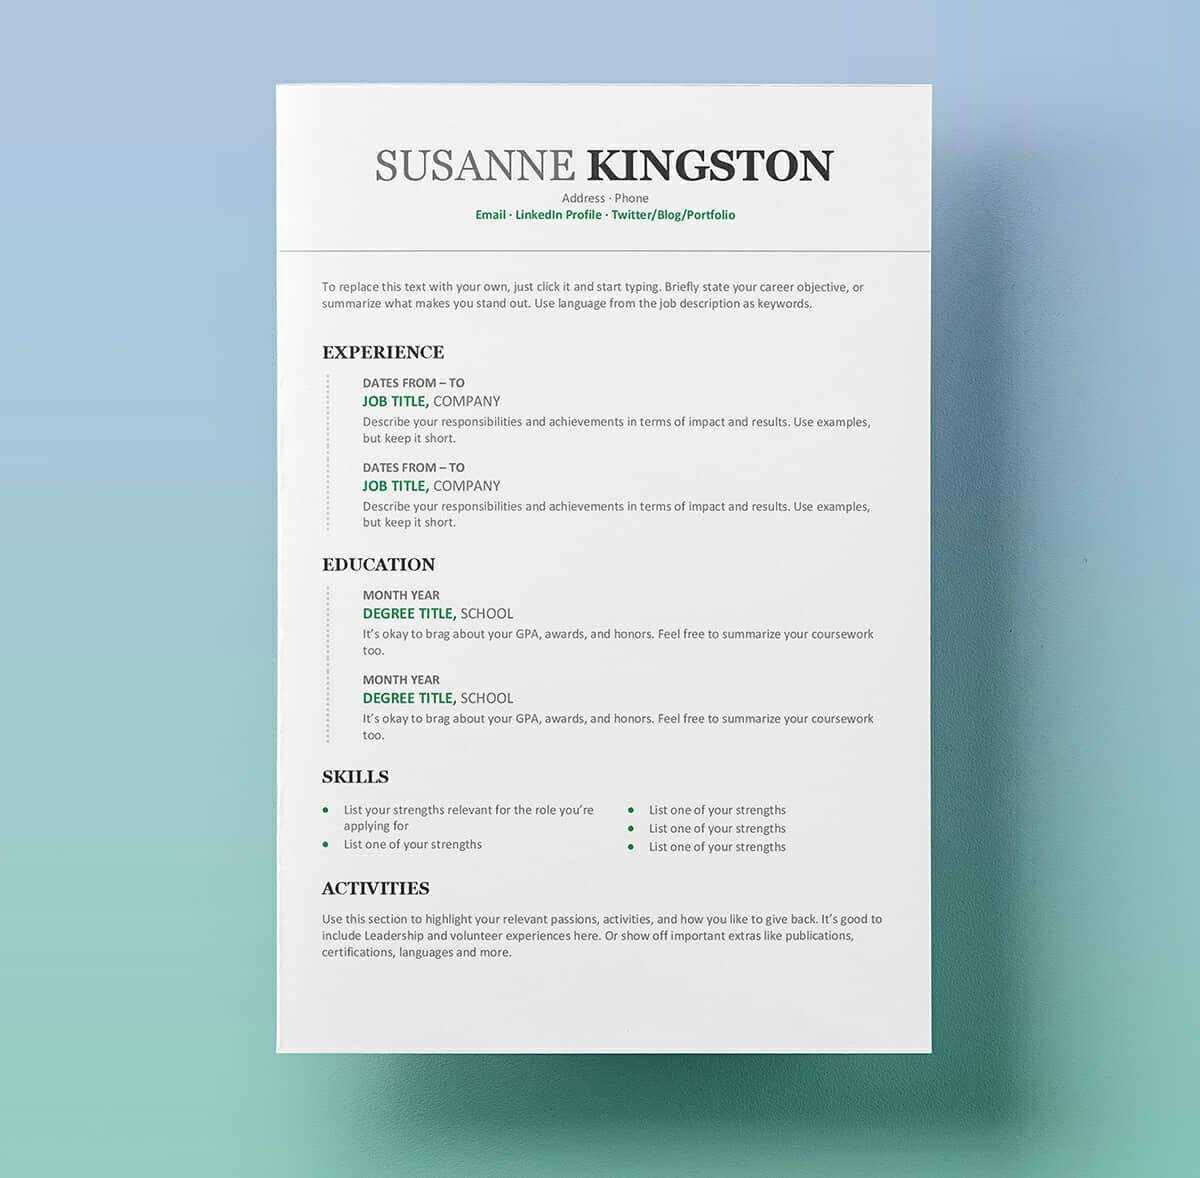 25 Resume Templates For Microsoft Word [Free Download] Regarding Free Downloadable Resume Templates For Word